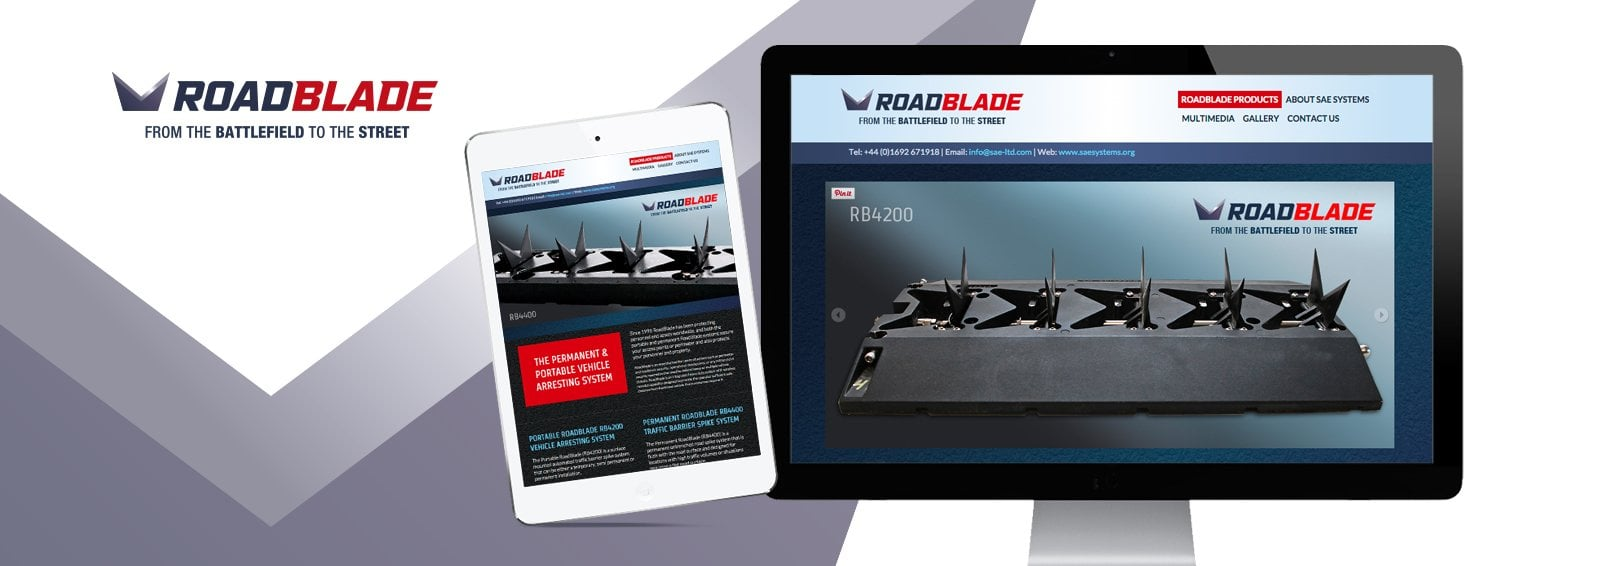 Web design and company branding for RoadBlade